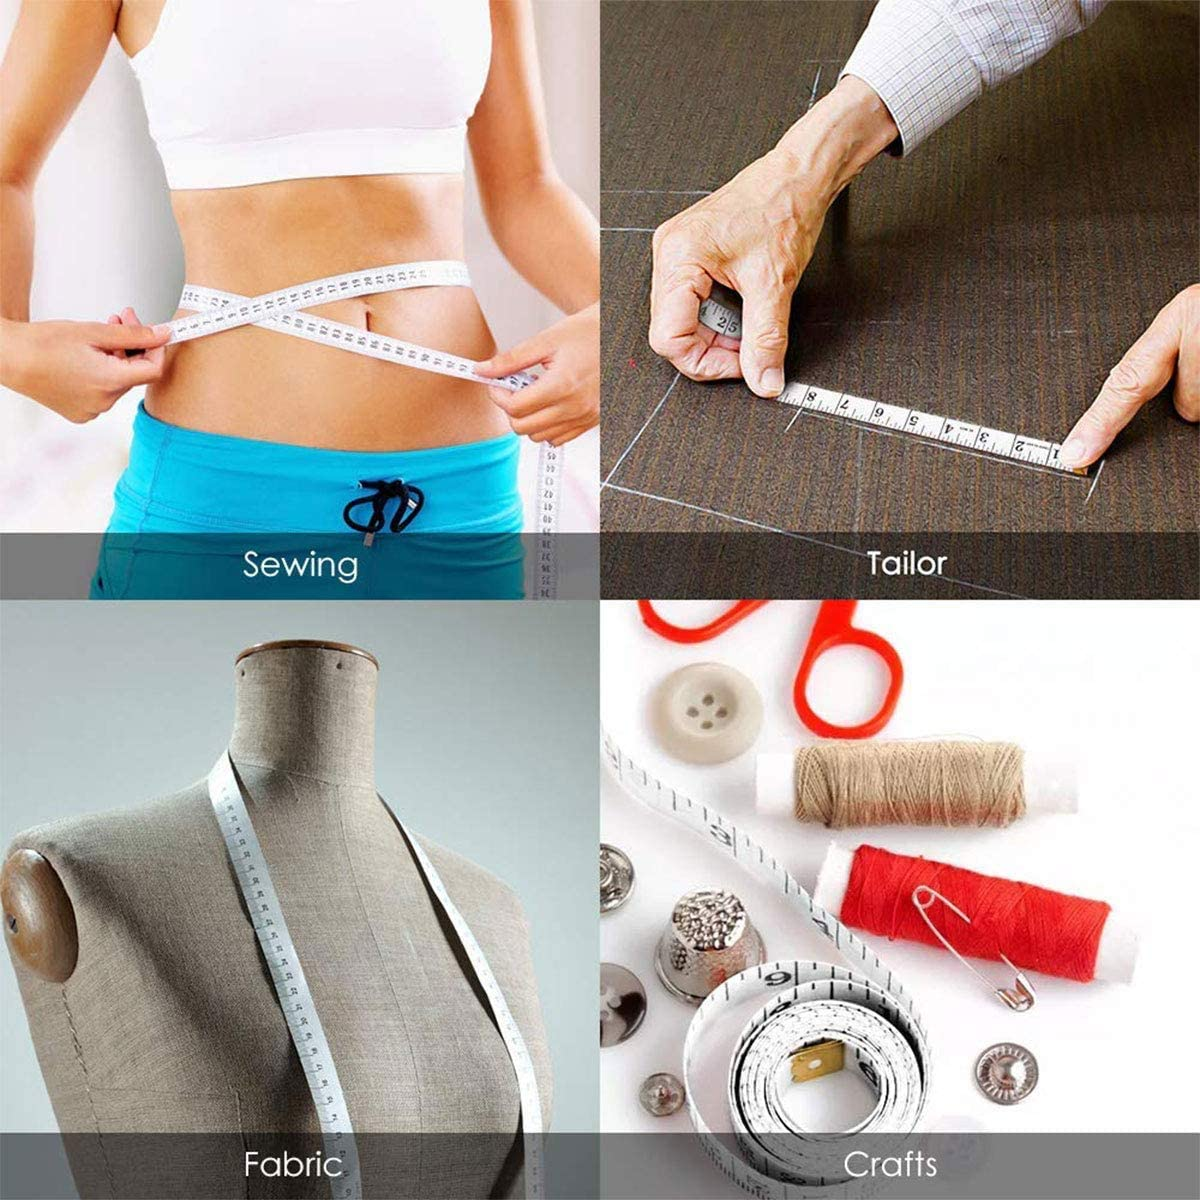 60inch // 150cm White // 1.5 metre Brand New Dual Sided Body Measuring Ruler Sewing Cloth Tailor Tape Soft Tape for Family Measure Chest//Waist Circumference 1 Pcs